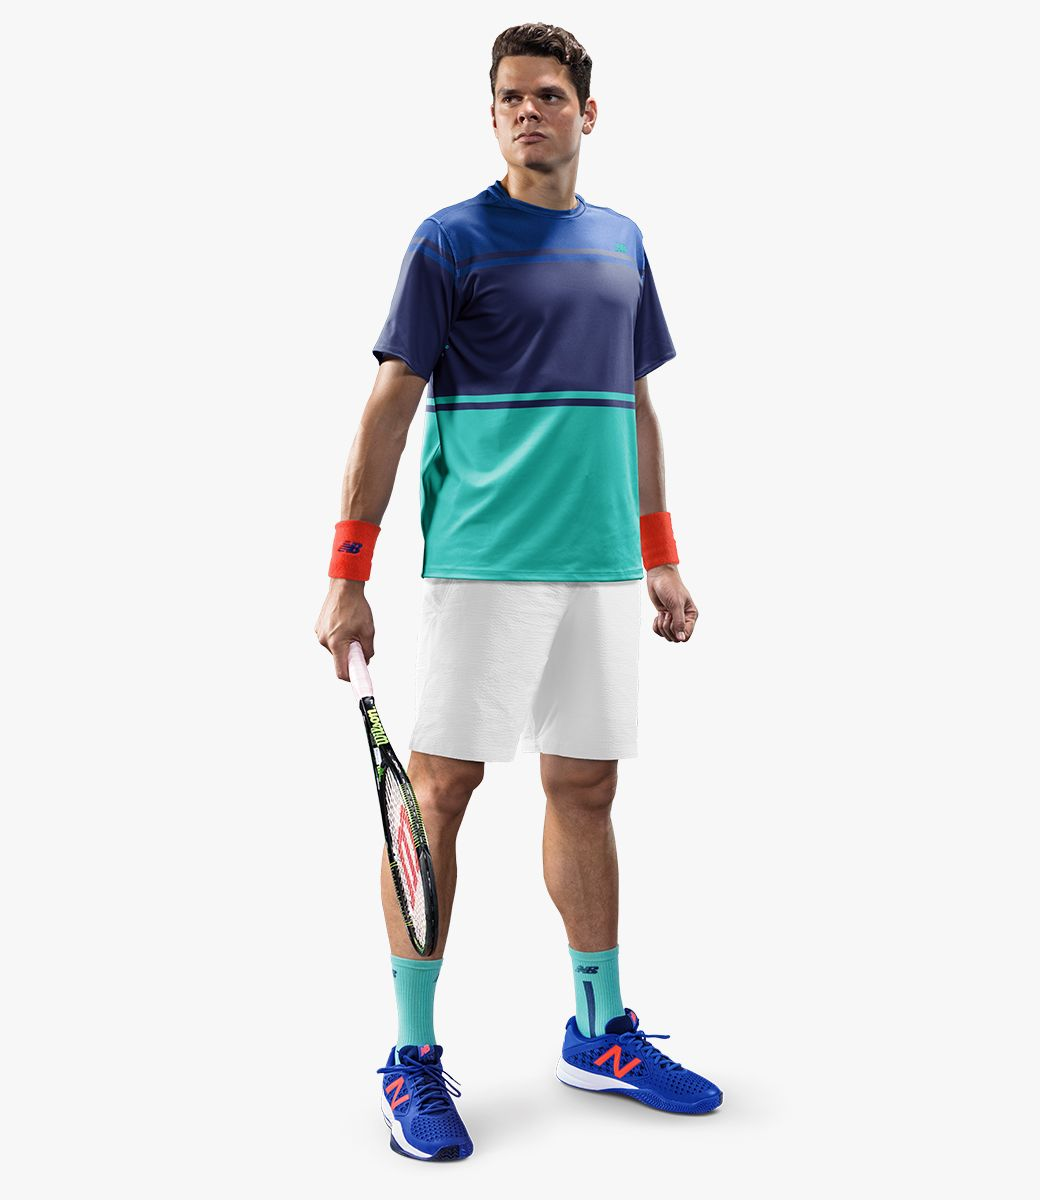 New Balance Mens Tournament Look,